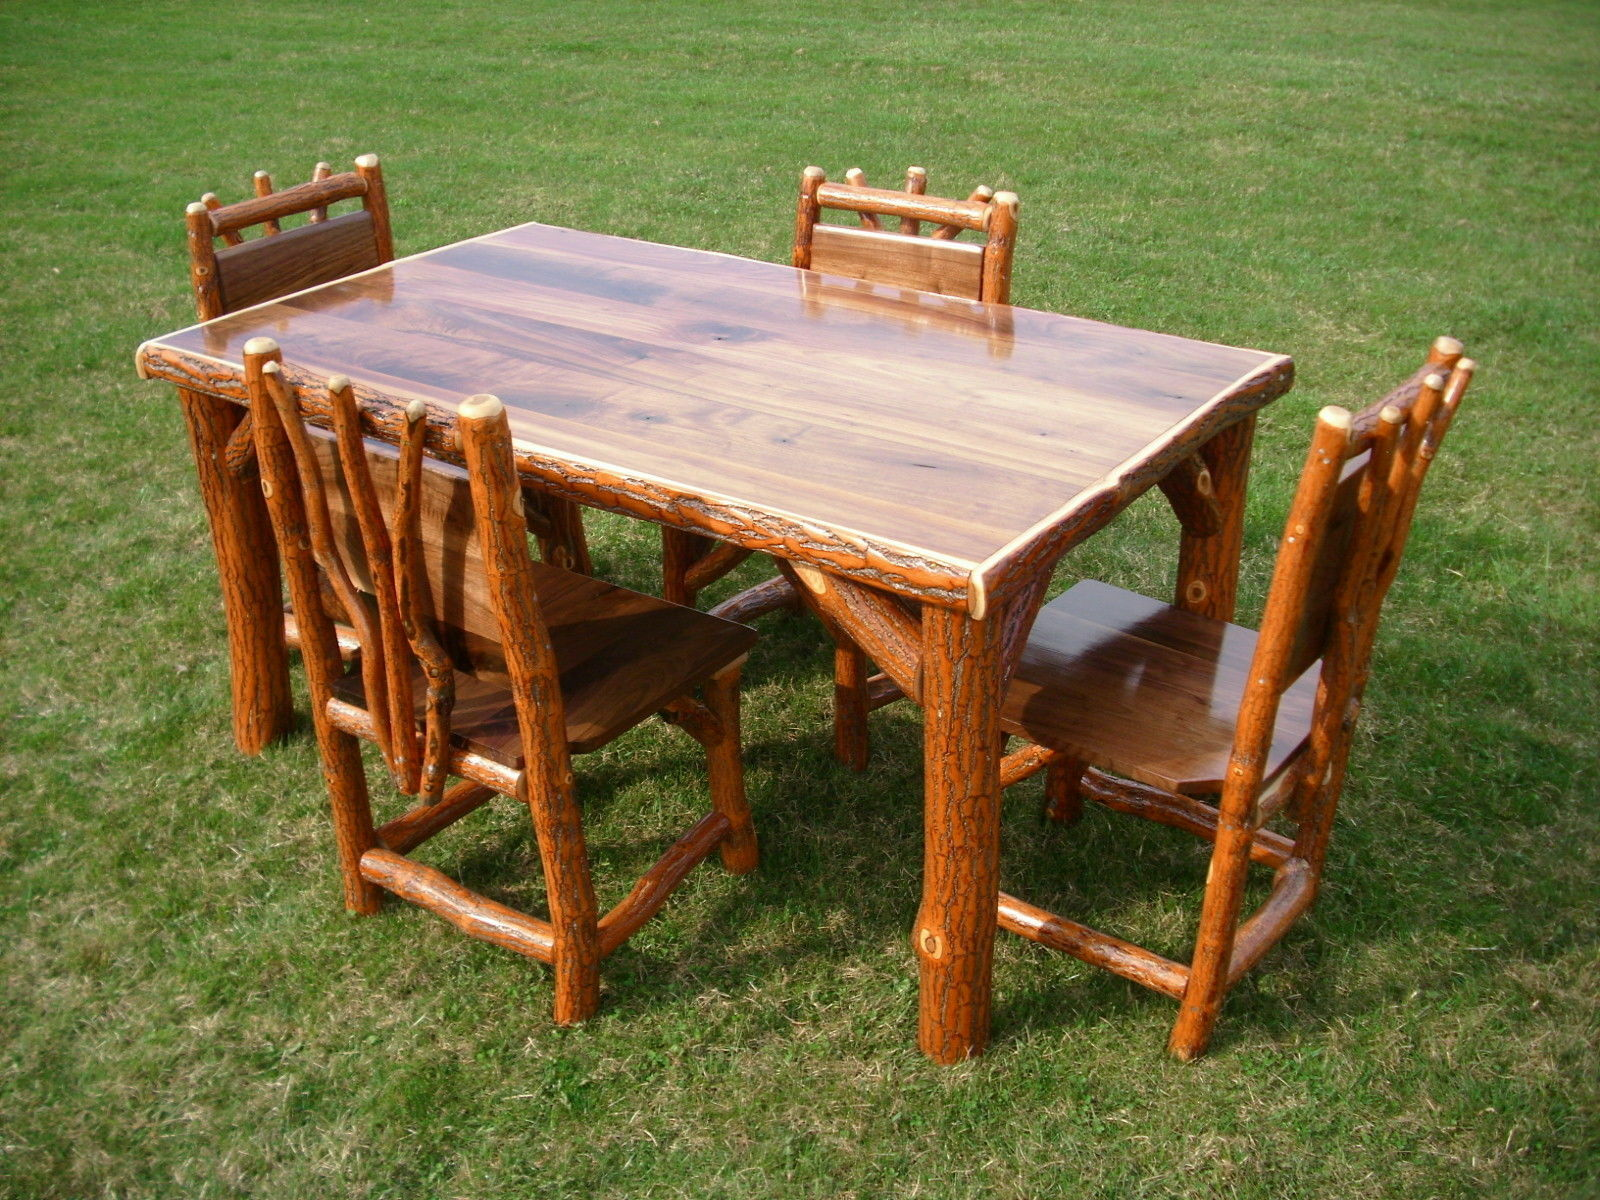 rustic kitchen table rustic kitchen chairs How to Build a Rustic Kitchen Table eBay